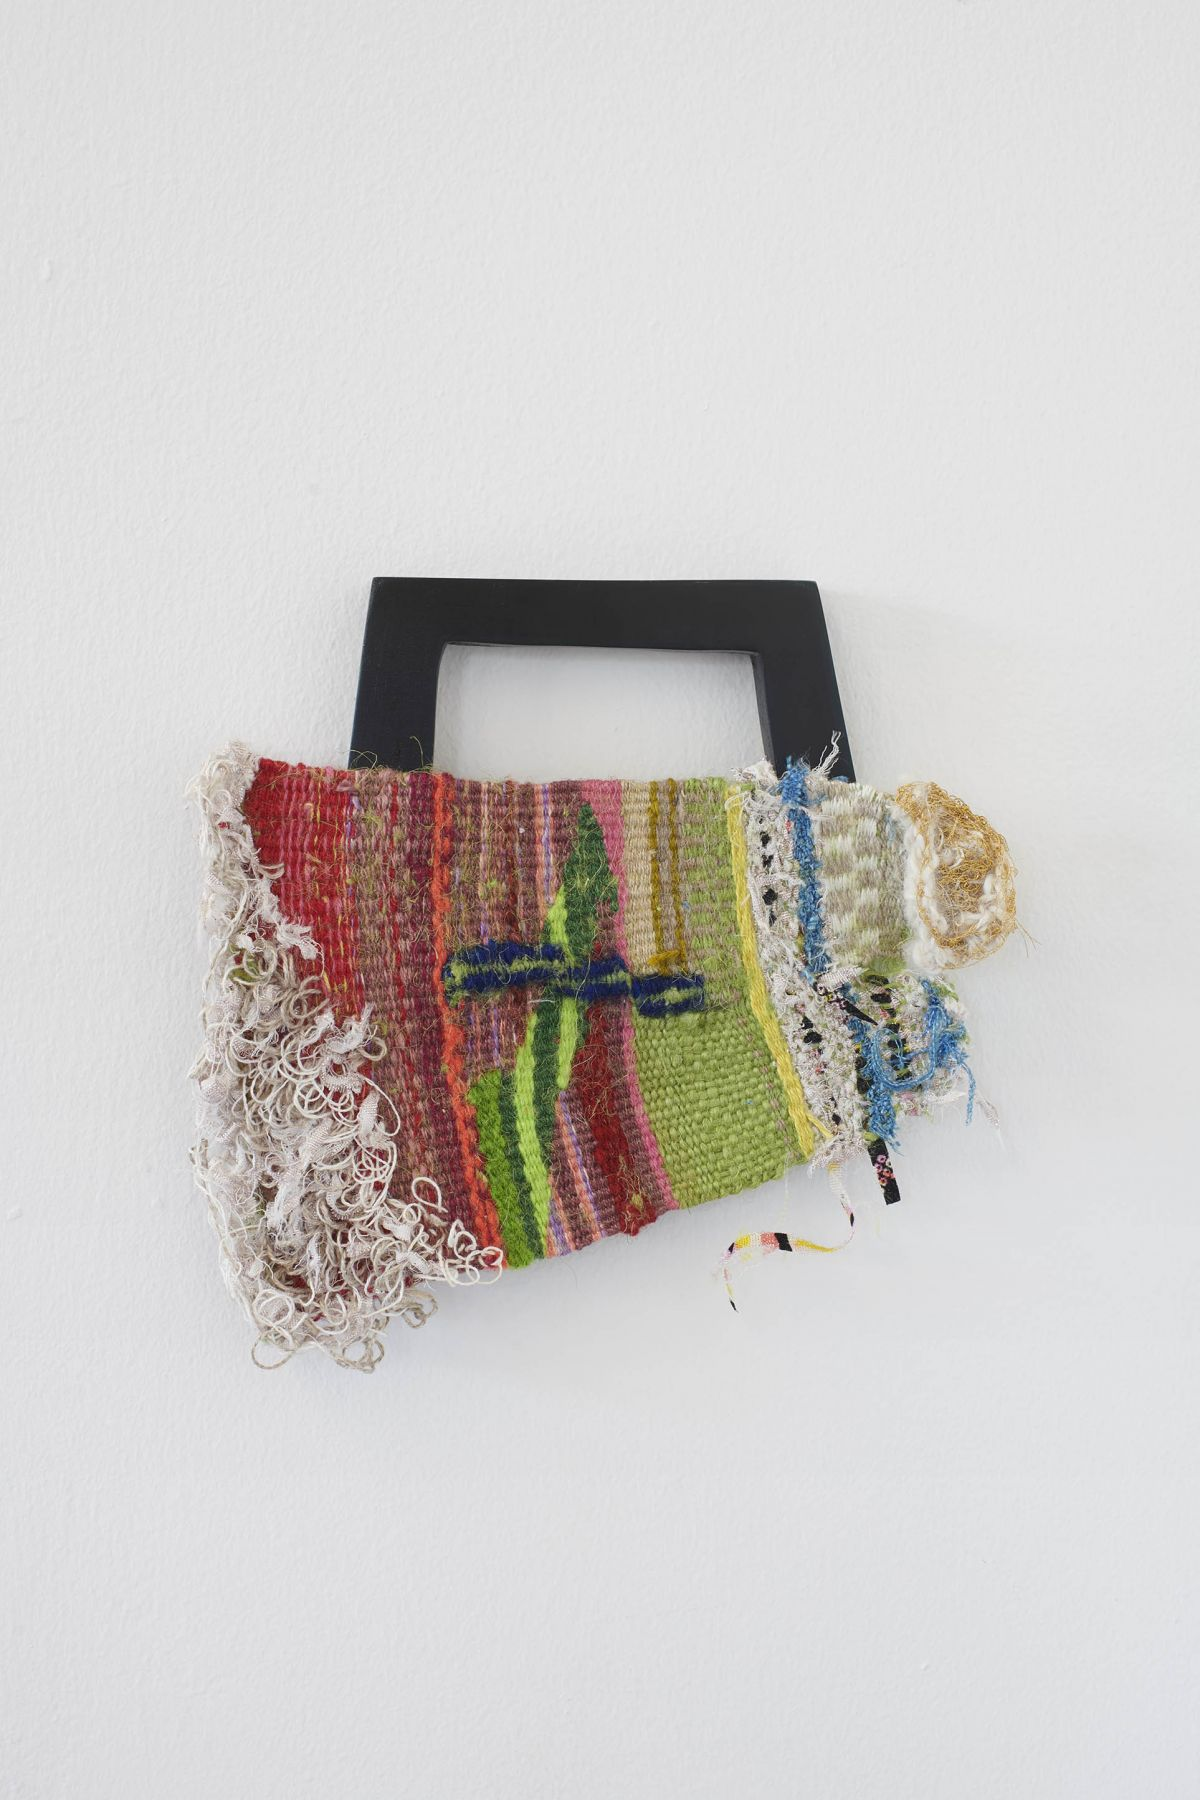 A small colorful weaving shaped like a clutch purse